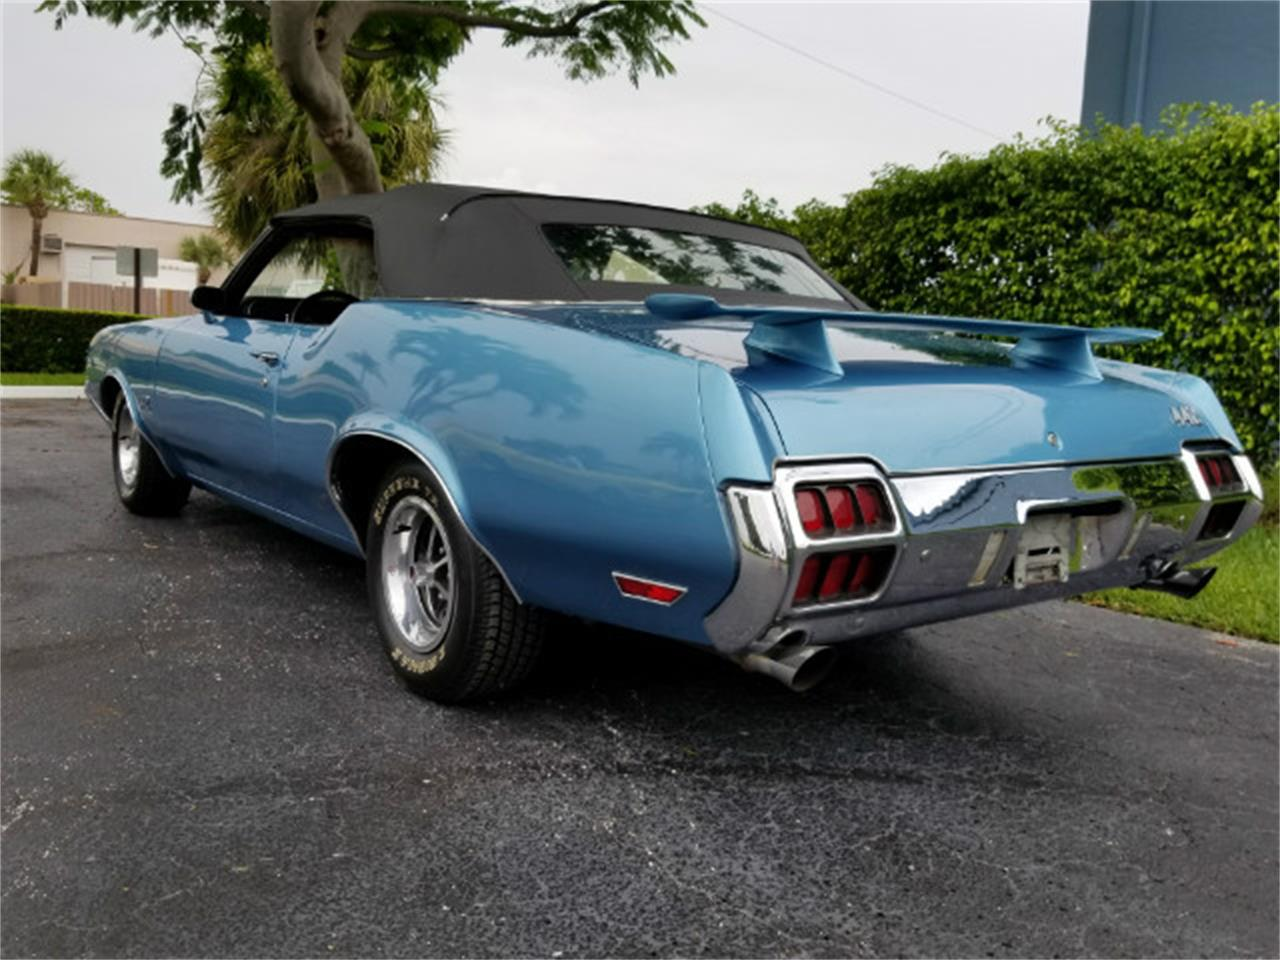 Large Picture of Classic '72 442 located in Boca Raton Florida - $37,800.00 Offered by Show Cars of Boca Raton - M89W